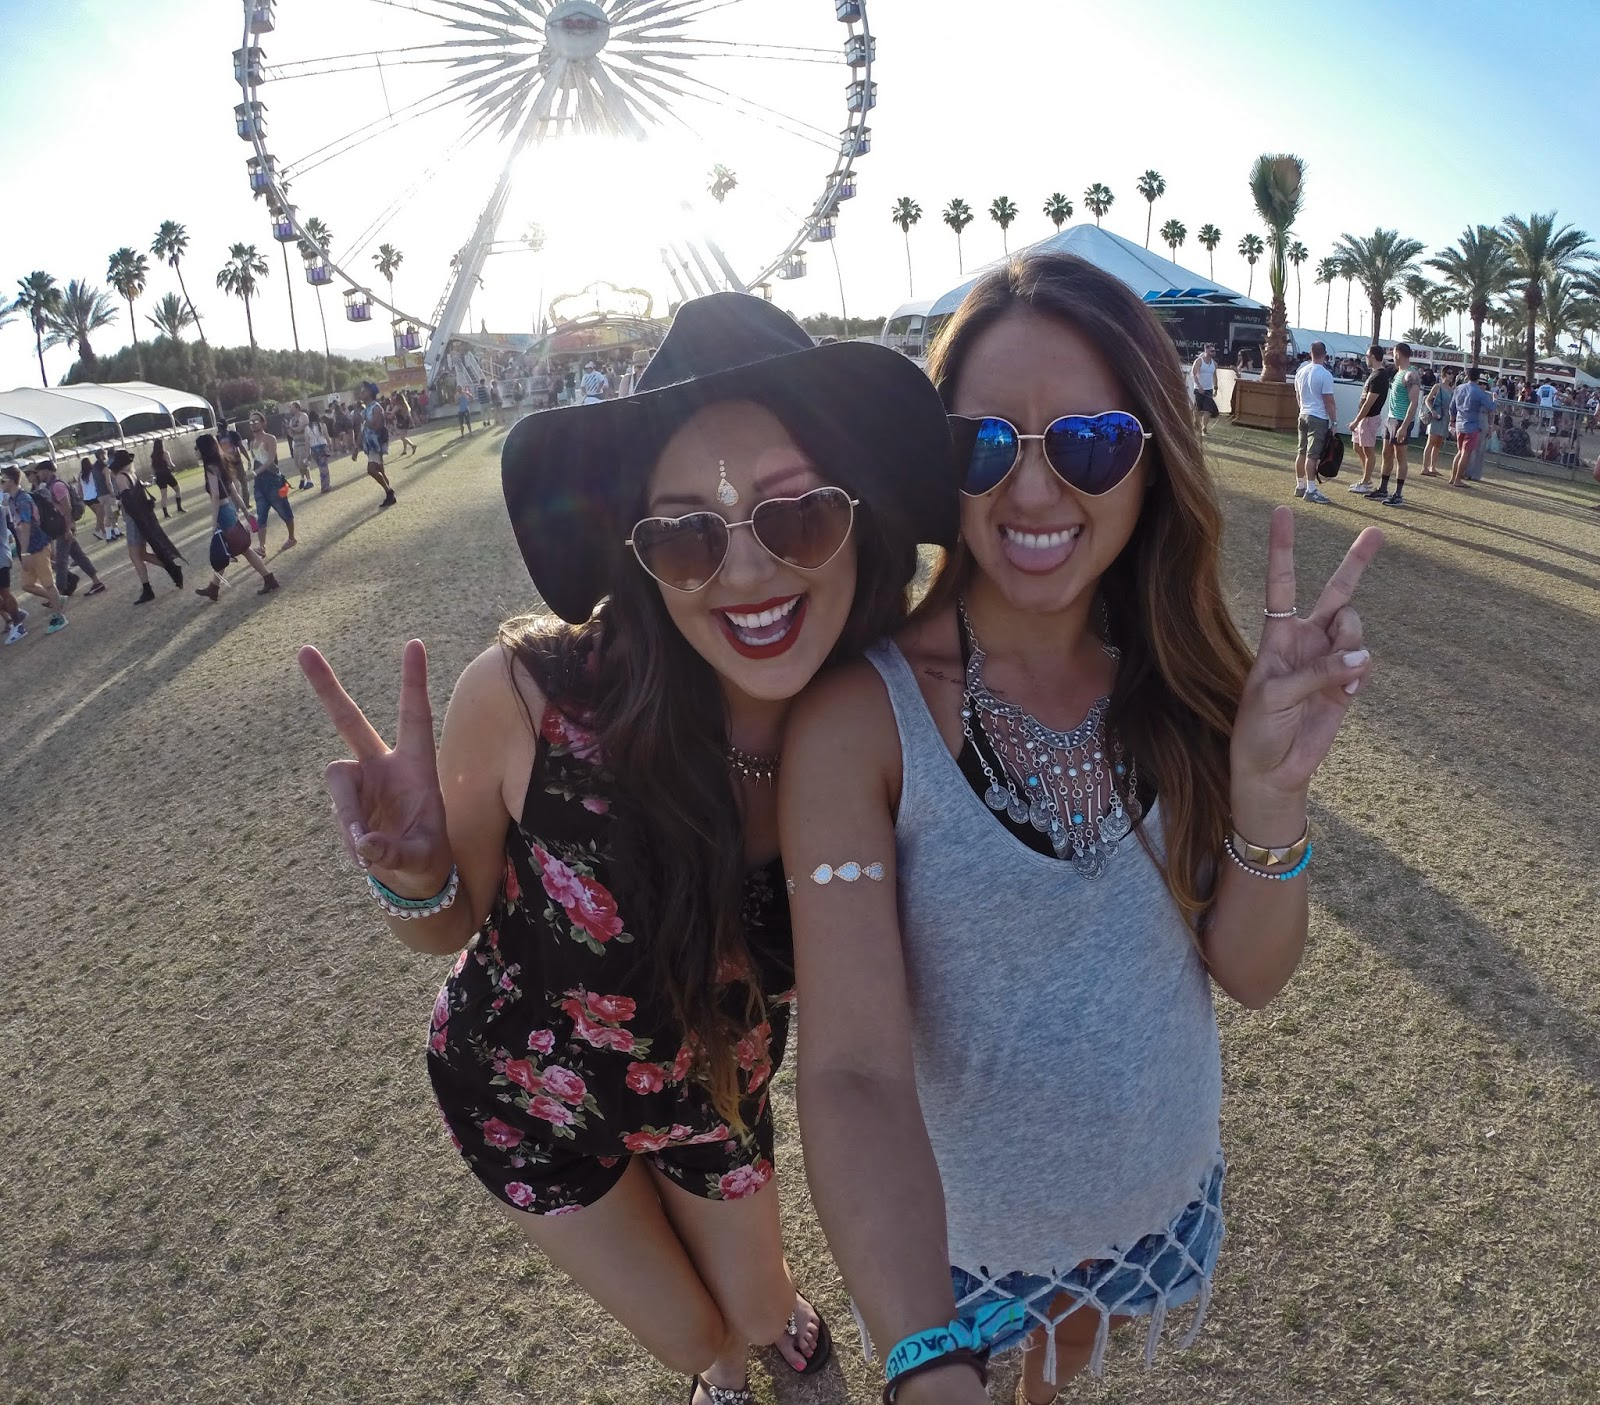 Fashion bloggers Mash Elle and Boho Nouveau posing in a selfie with the iconic Coachella ferris wheel - Peace & Love: Coachella Outfits by popular Orlando fashion blogger Mash Elle